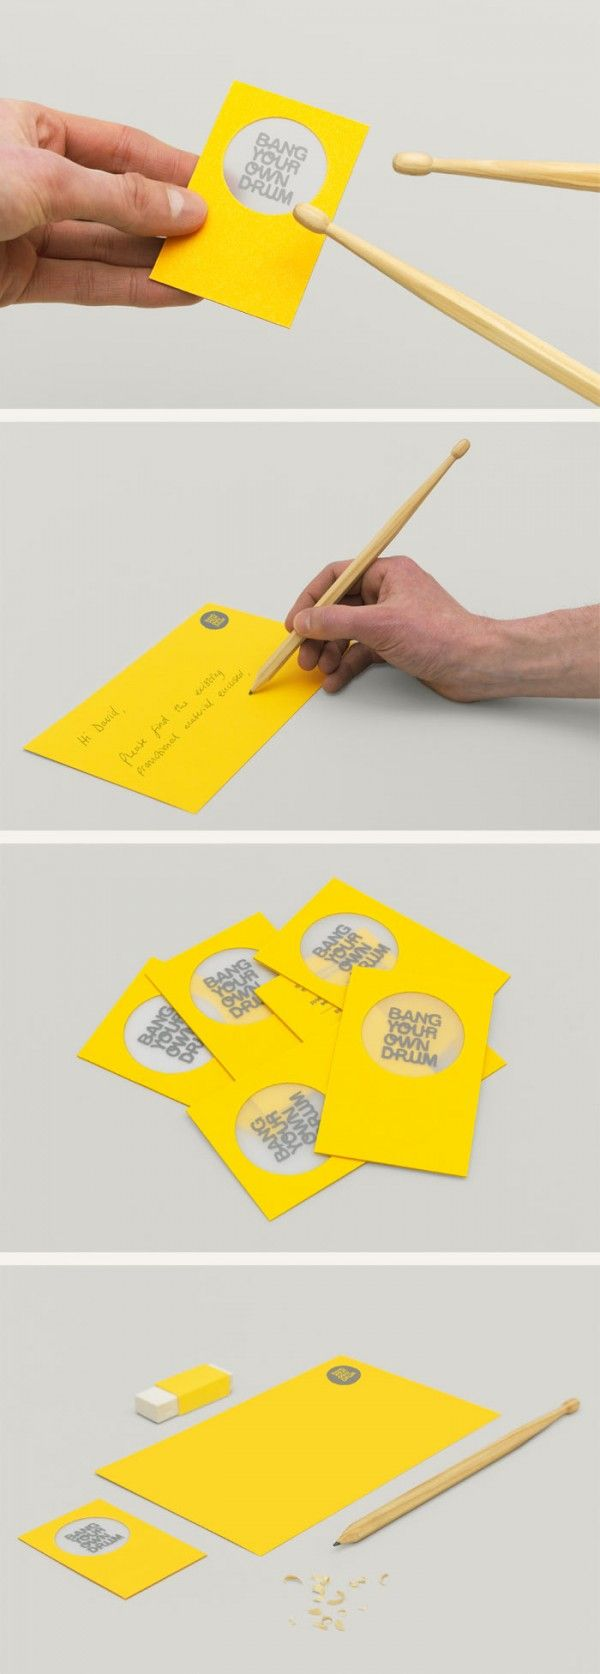 bang your own drum? awesome business cards                                                                                                                                                                                 More